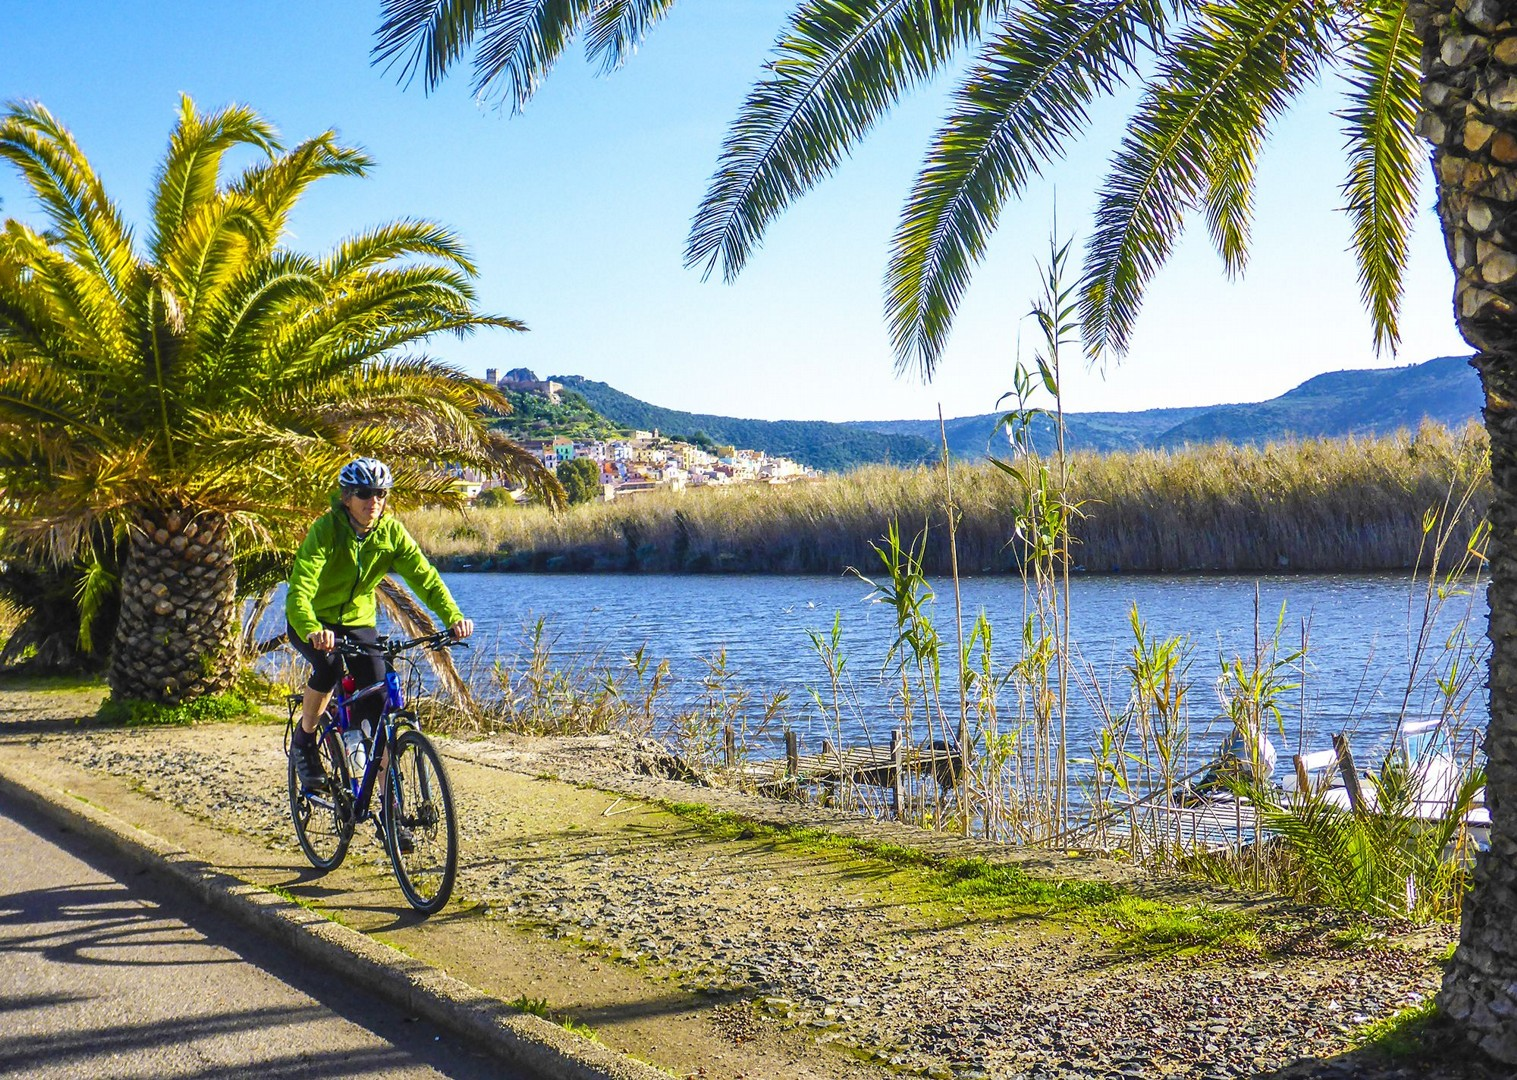 cycling-italy-tour-leisure-culture-sardinia-saddle-skedaddle-fun-easy.jpg - Italy - Sardinia - West Coast Wonders - Self-Guided Leisure Cycling Holiday - Leisure Cycling